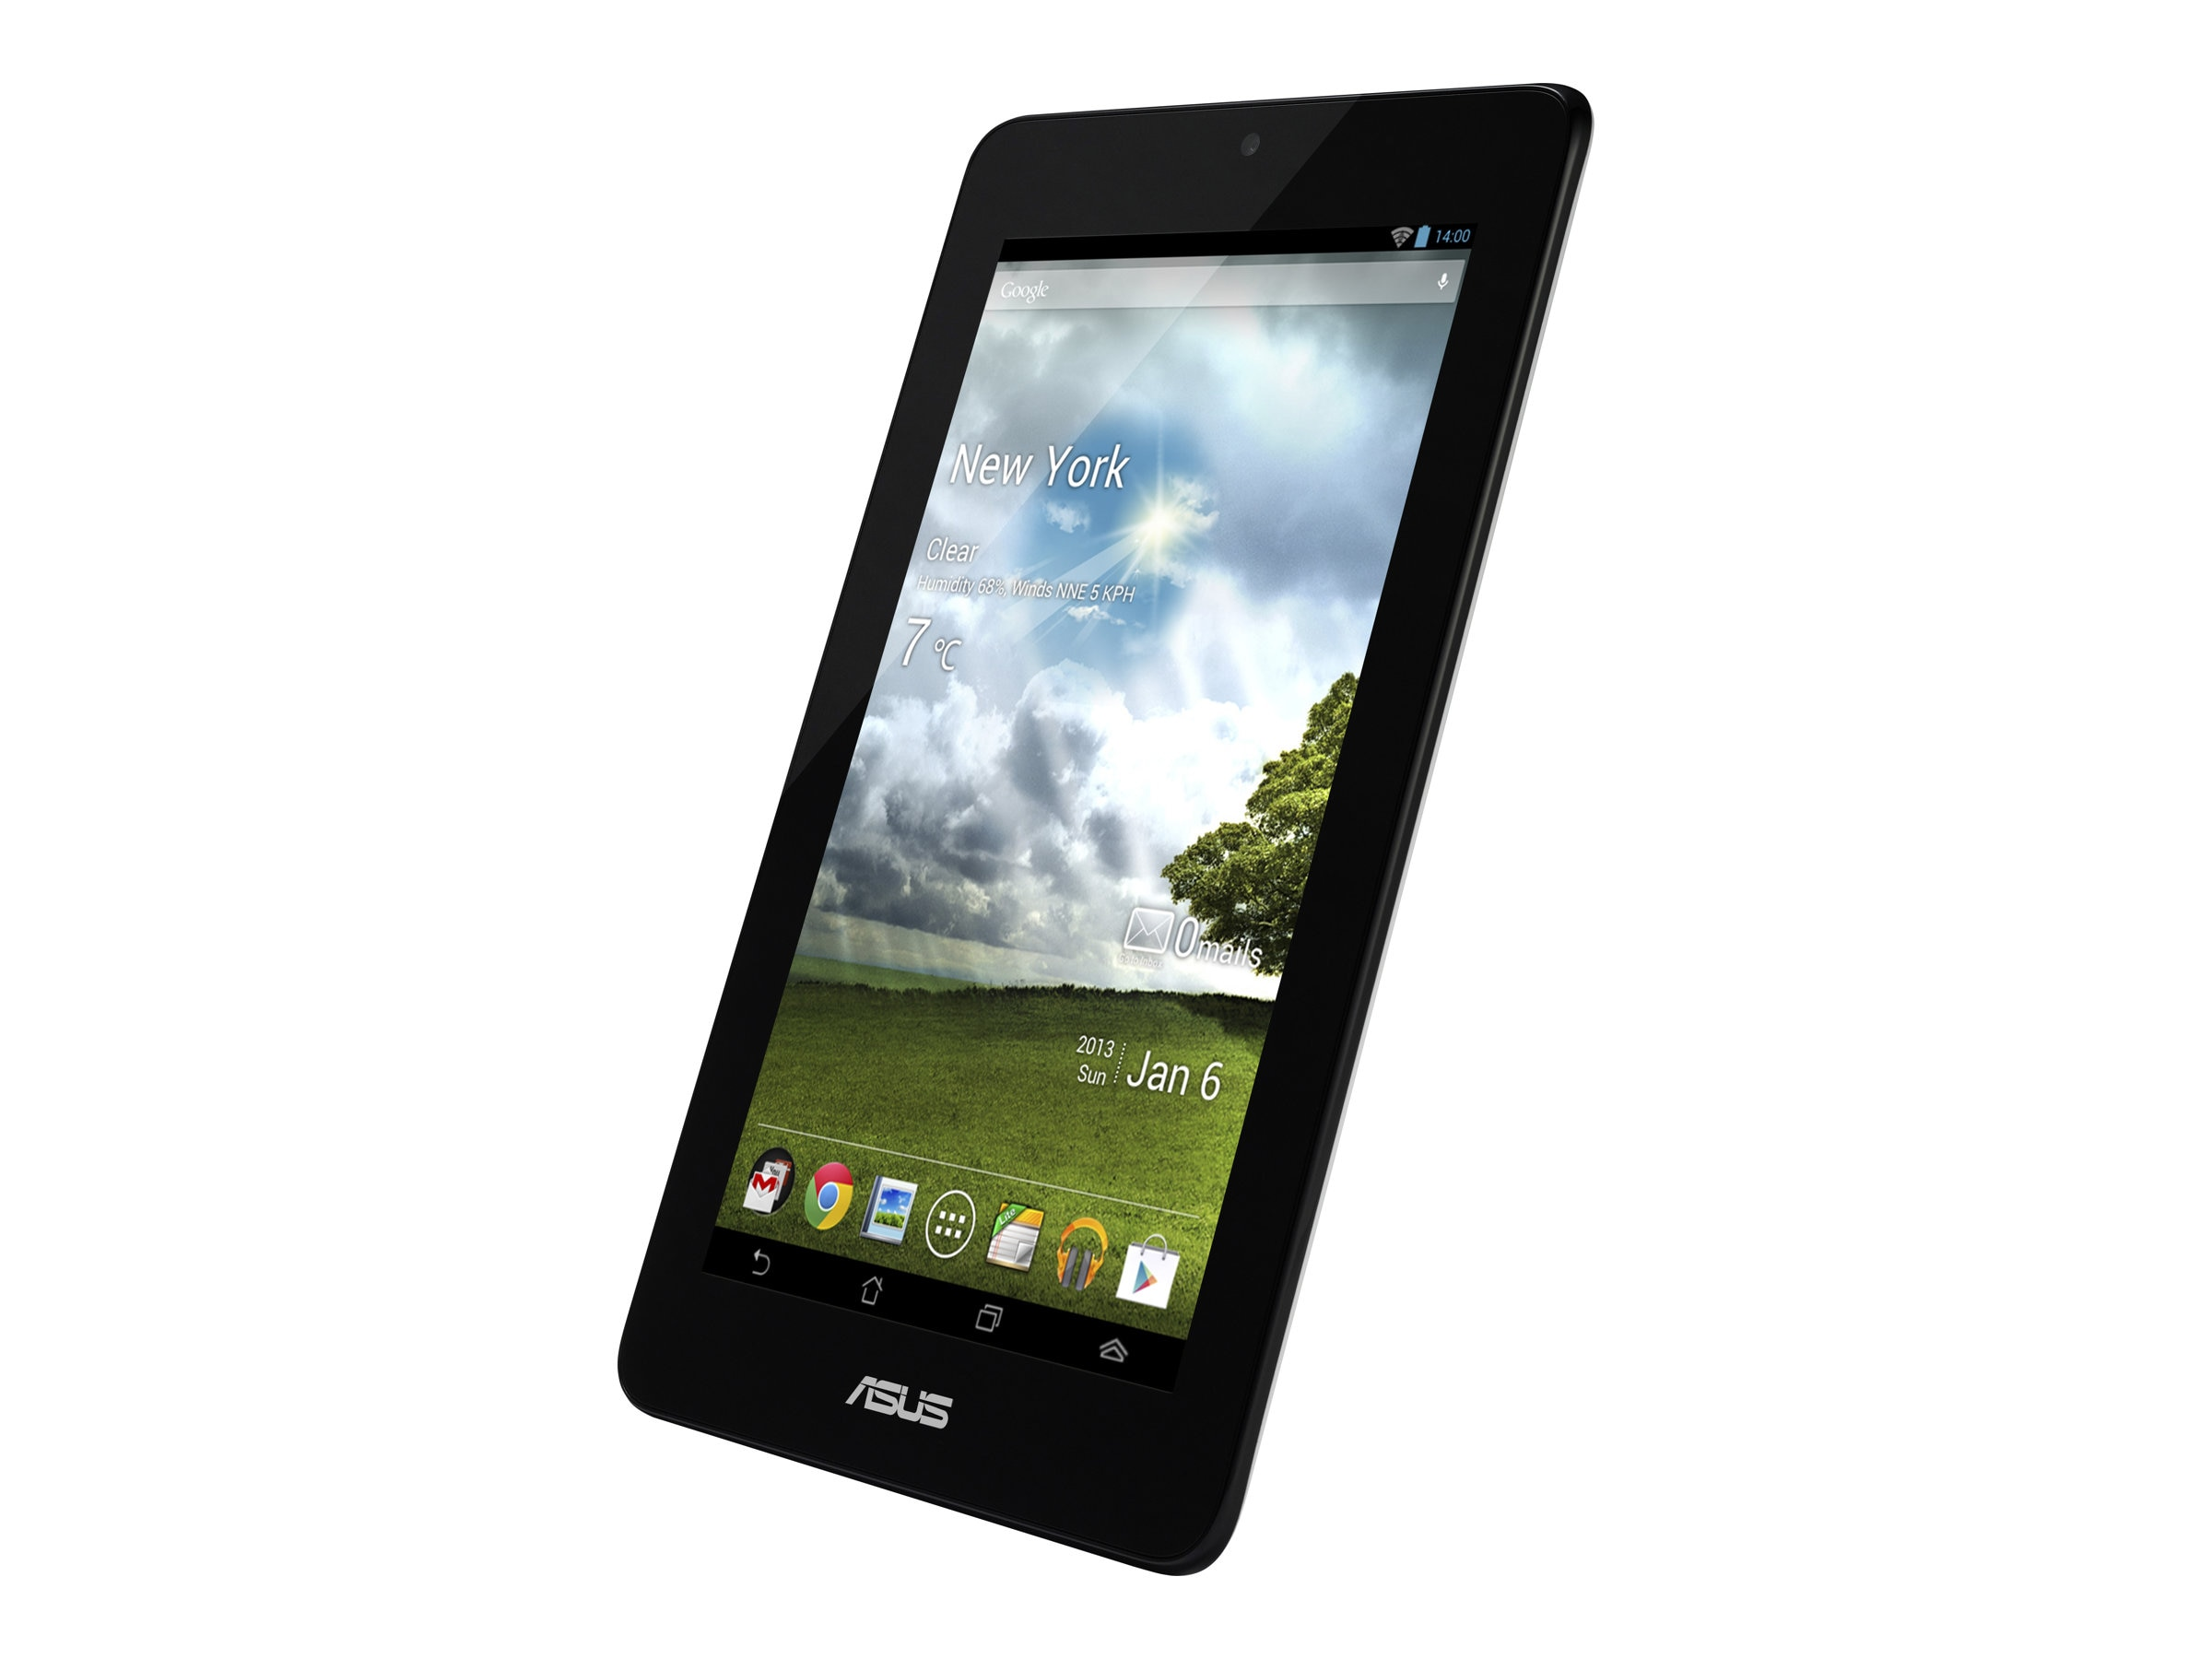 Asus MeMO Pad VIA Cortex A9 WM8950 1.0GHz 1GB RAM 32GB Flash bgn WC 7 MT Android 4.1, White, ME172V-B1-WH